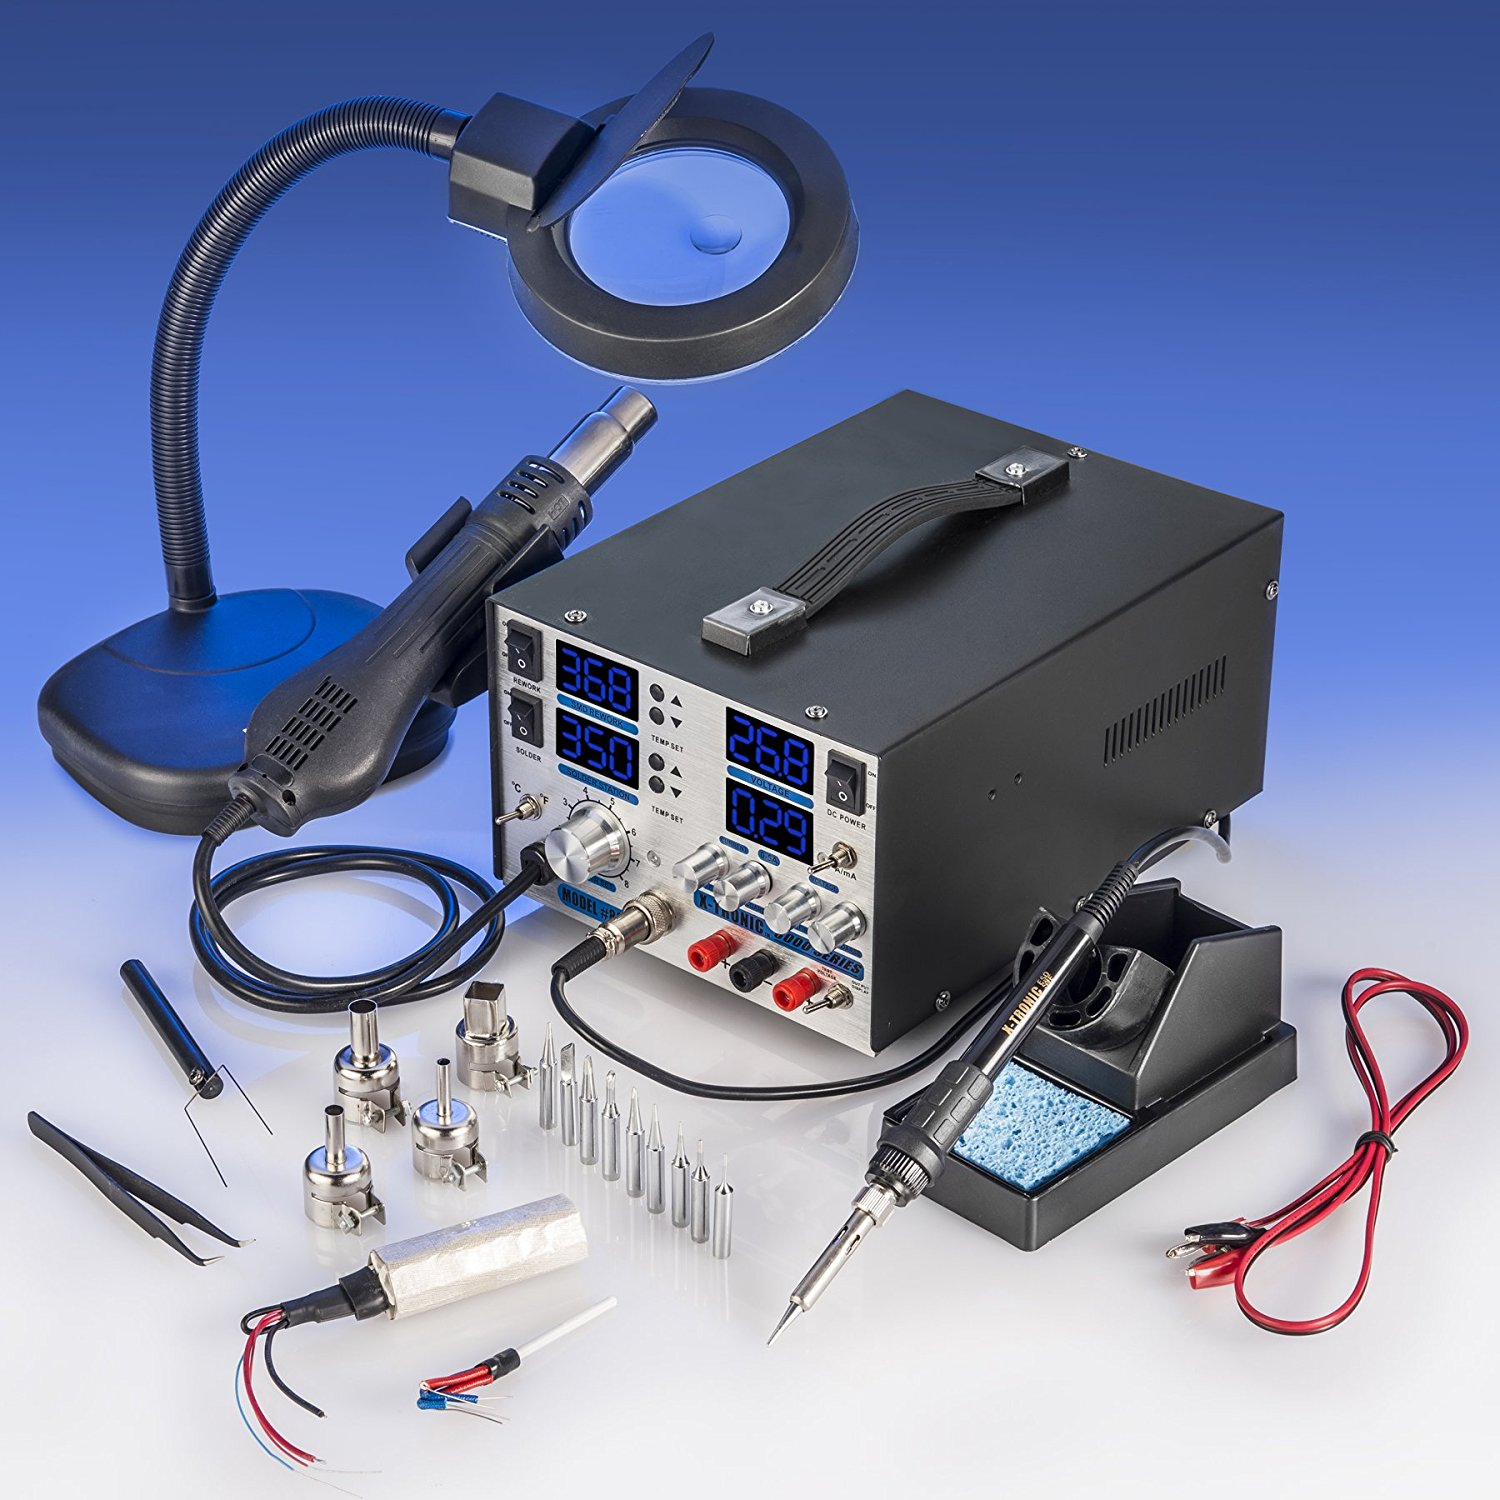 X-TRONIC 4 in 1 Soldering Station